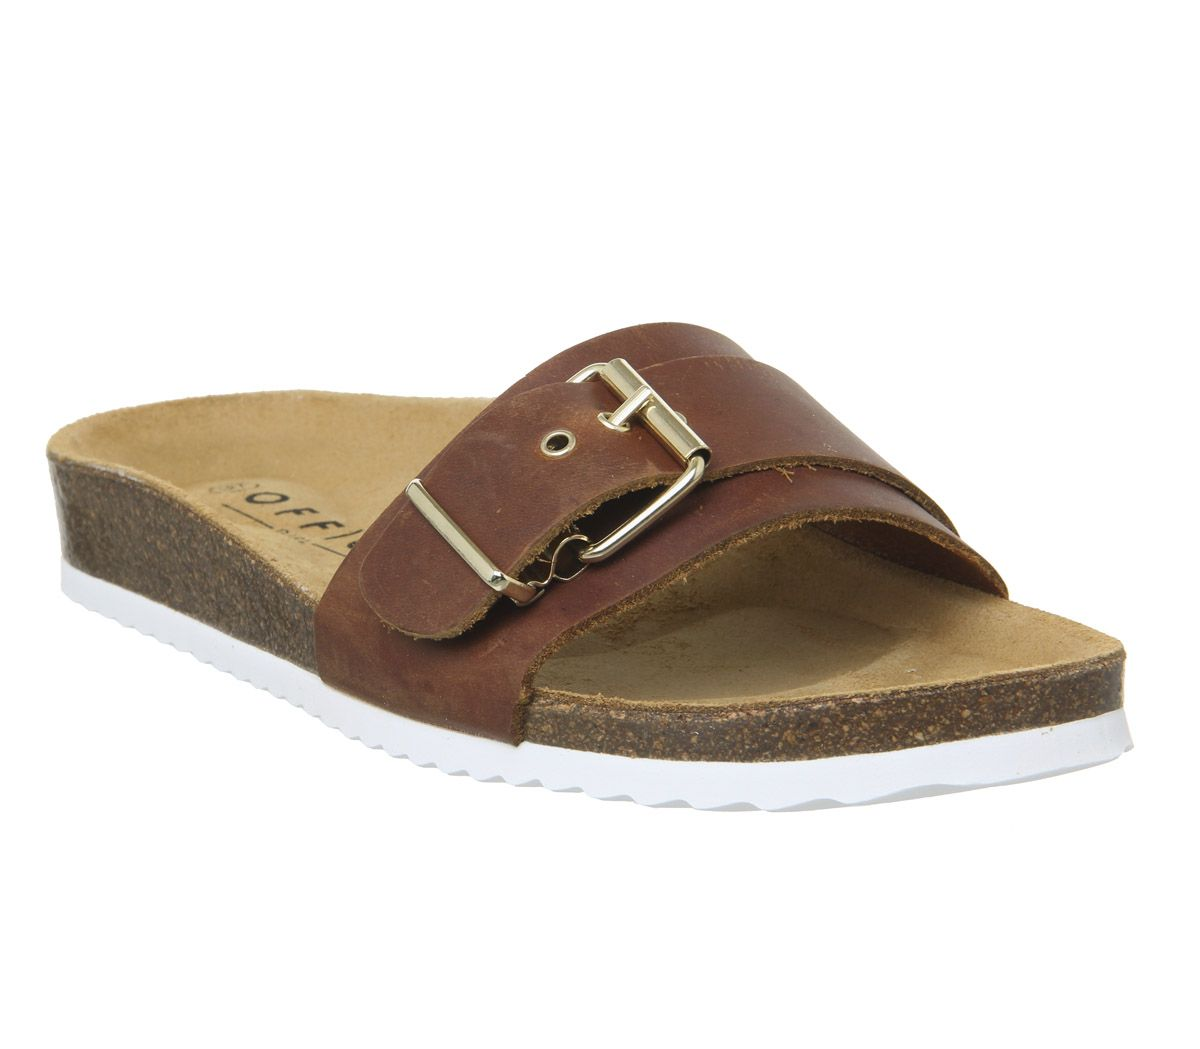 Womens-Office-Stereo-Buckle-Footbed-Sandals-Tan-Leather-Sandals thumbnail 3